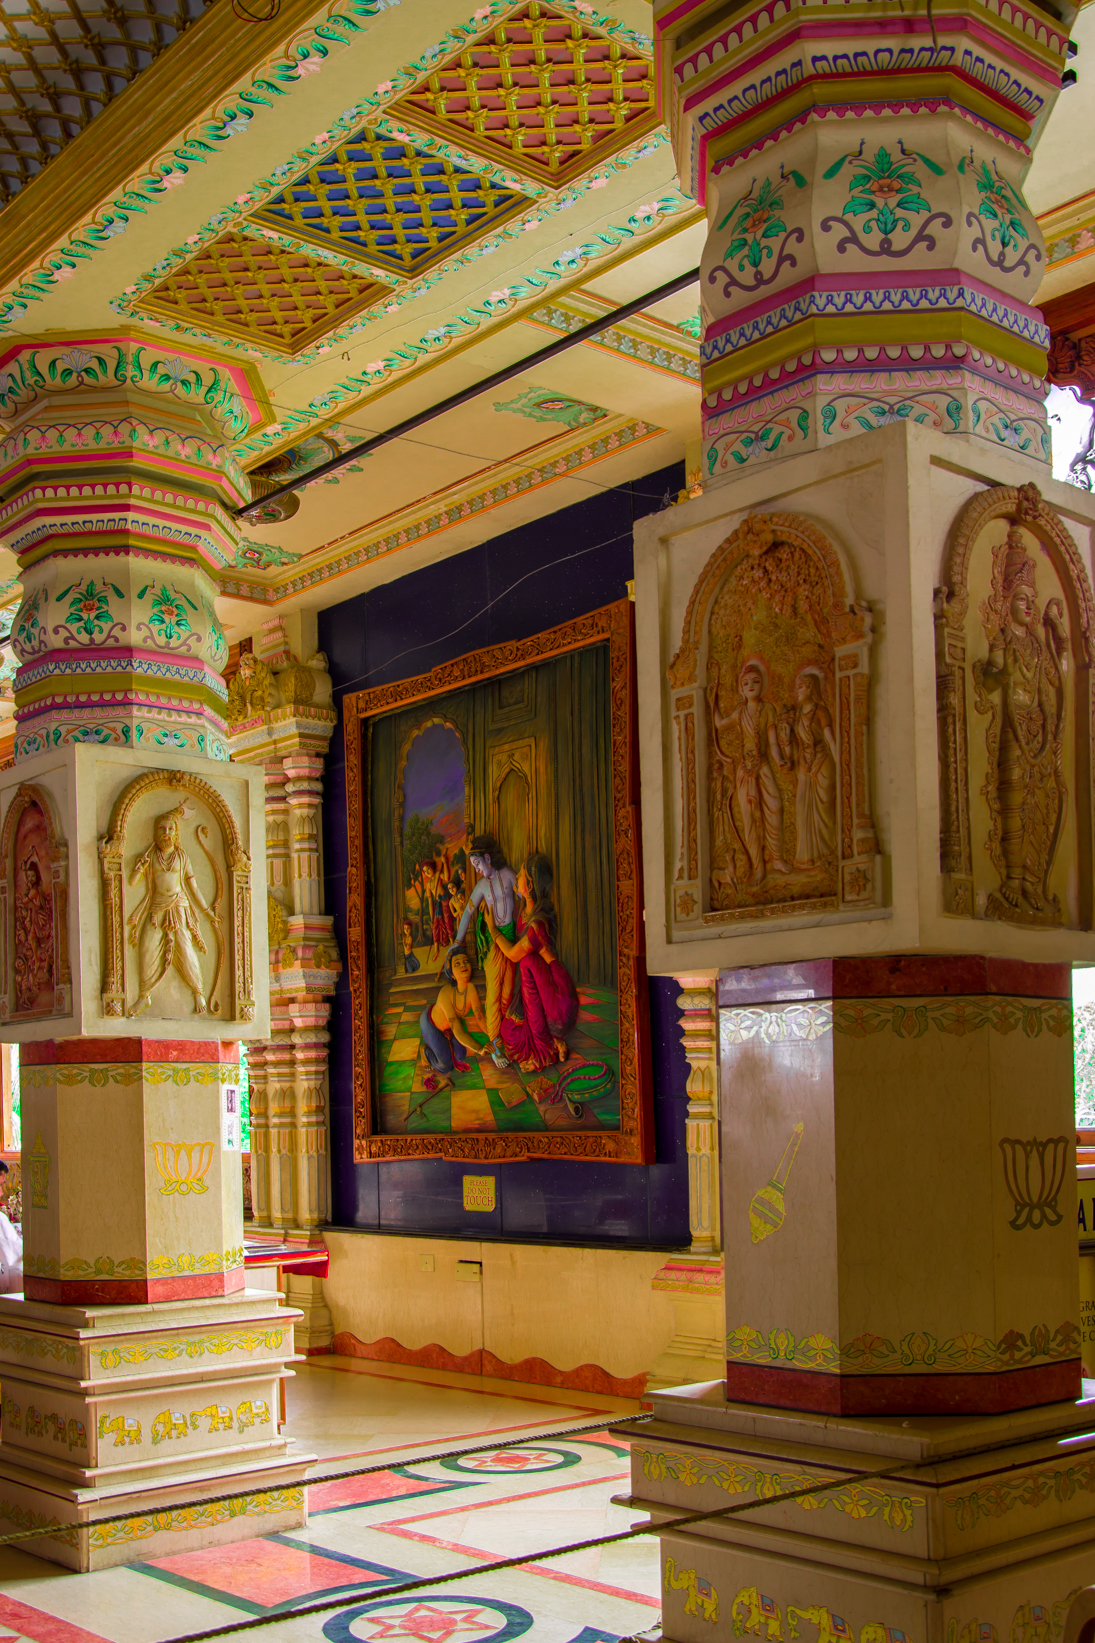 Captured this inside the temple. There're beautiful paintings and art work on every inch of the temple. Framed the painting through the beautiful pillars.